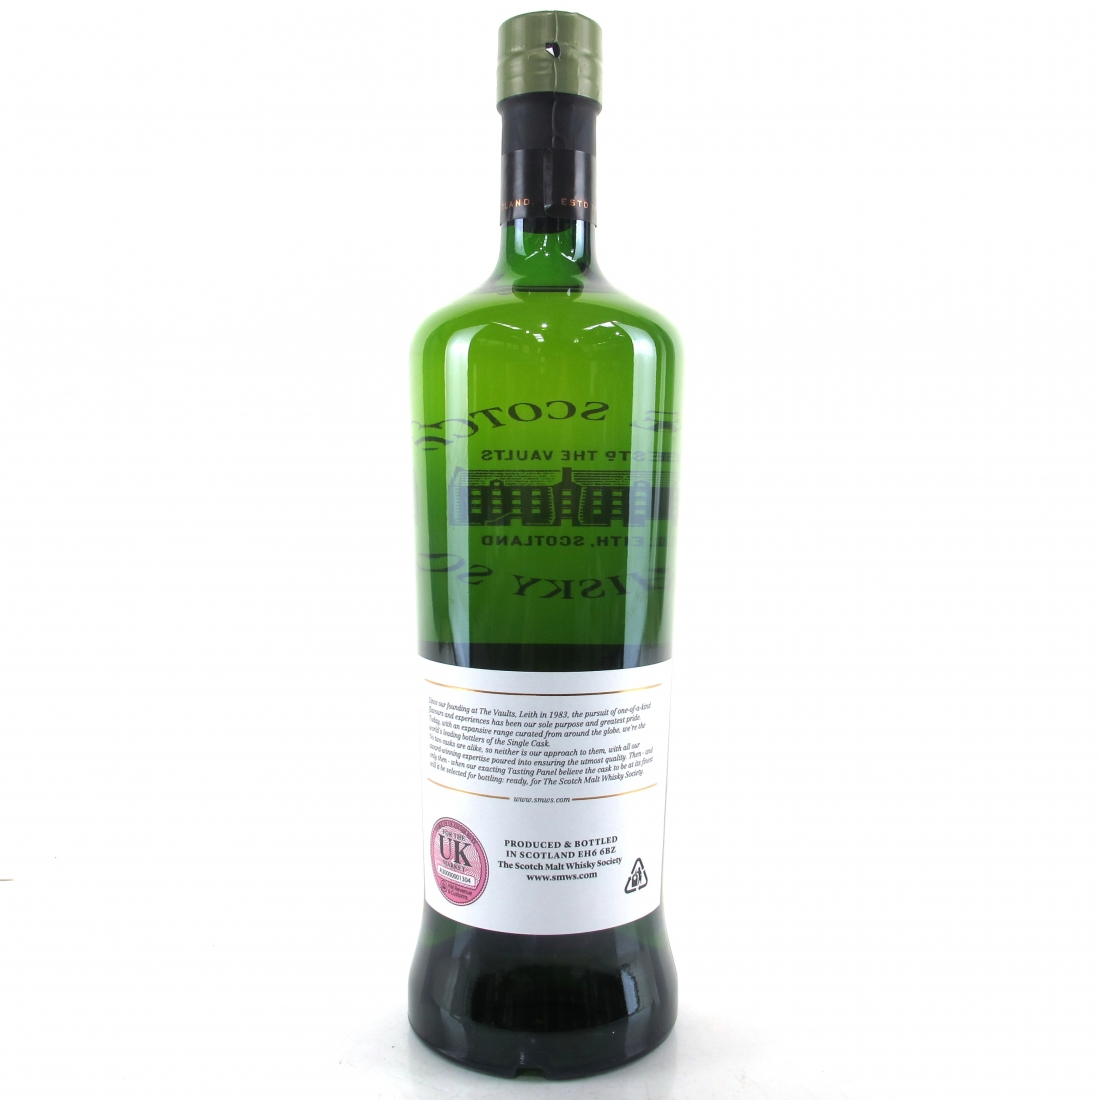 Caol Ila 2010 SMWS 7 Year Old 53.225